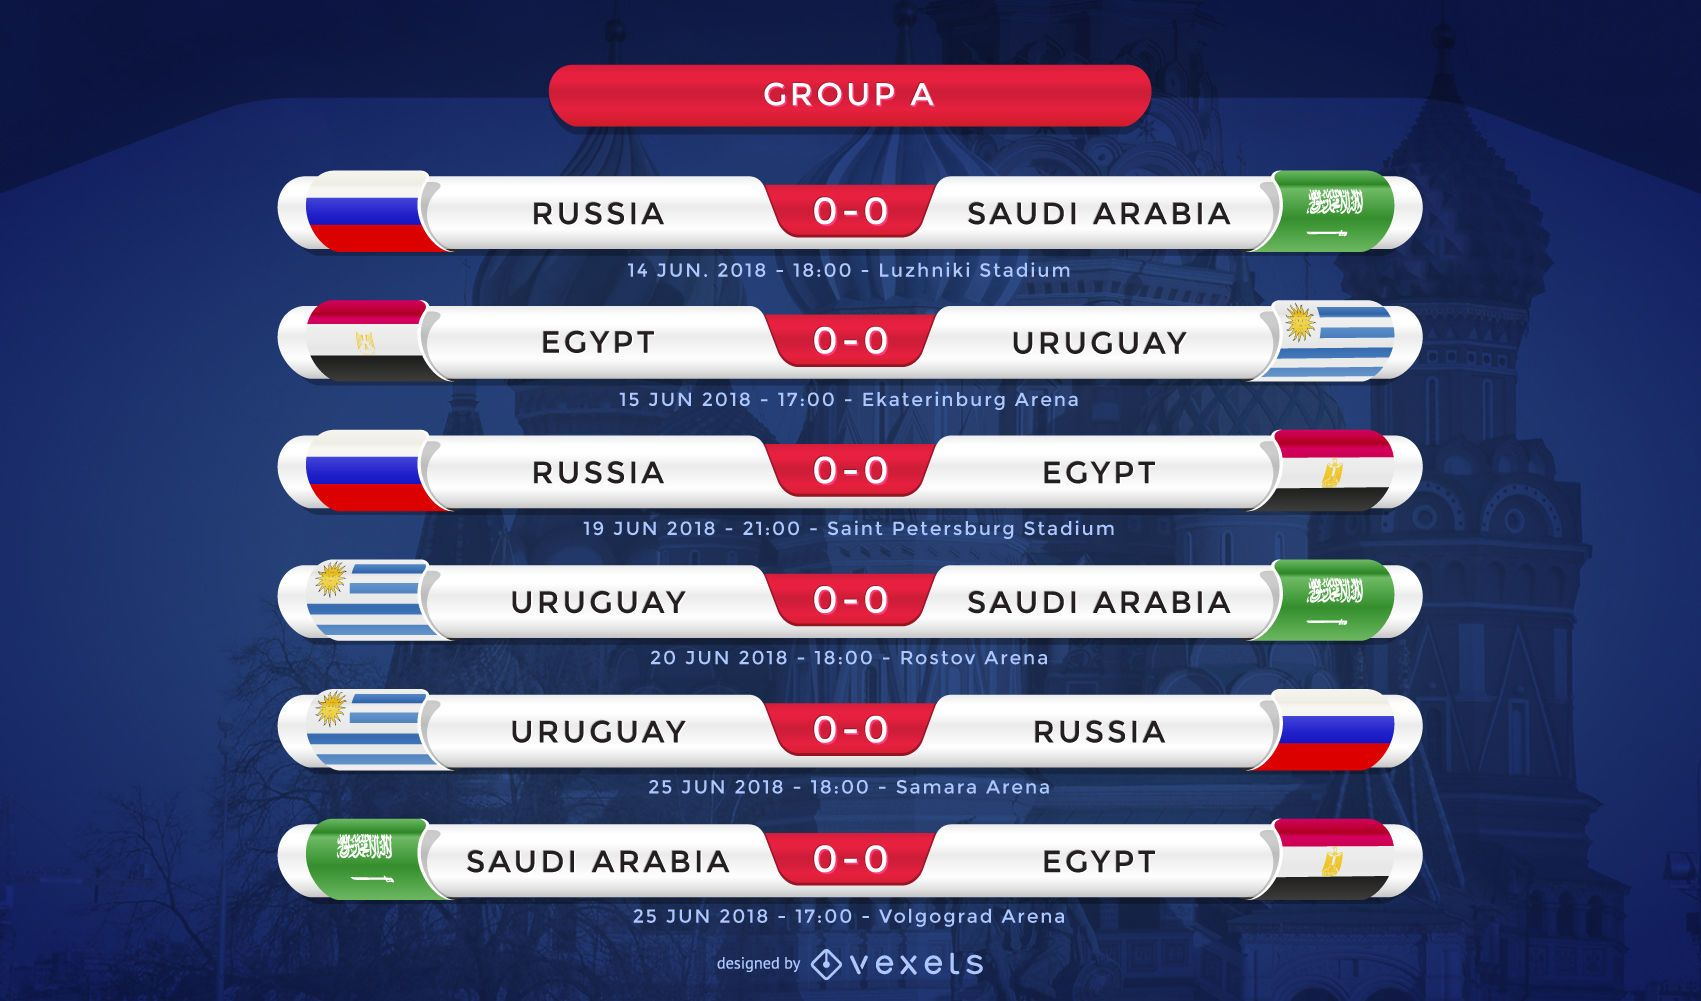 Russia 2018 Group A fixture